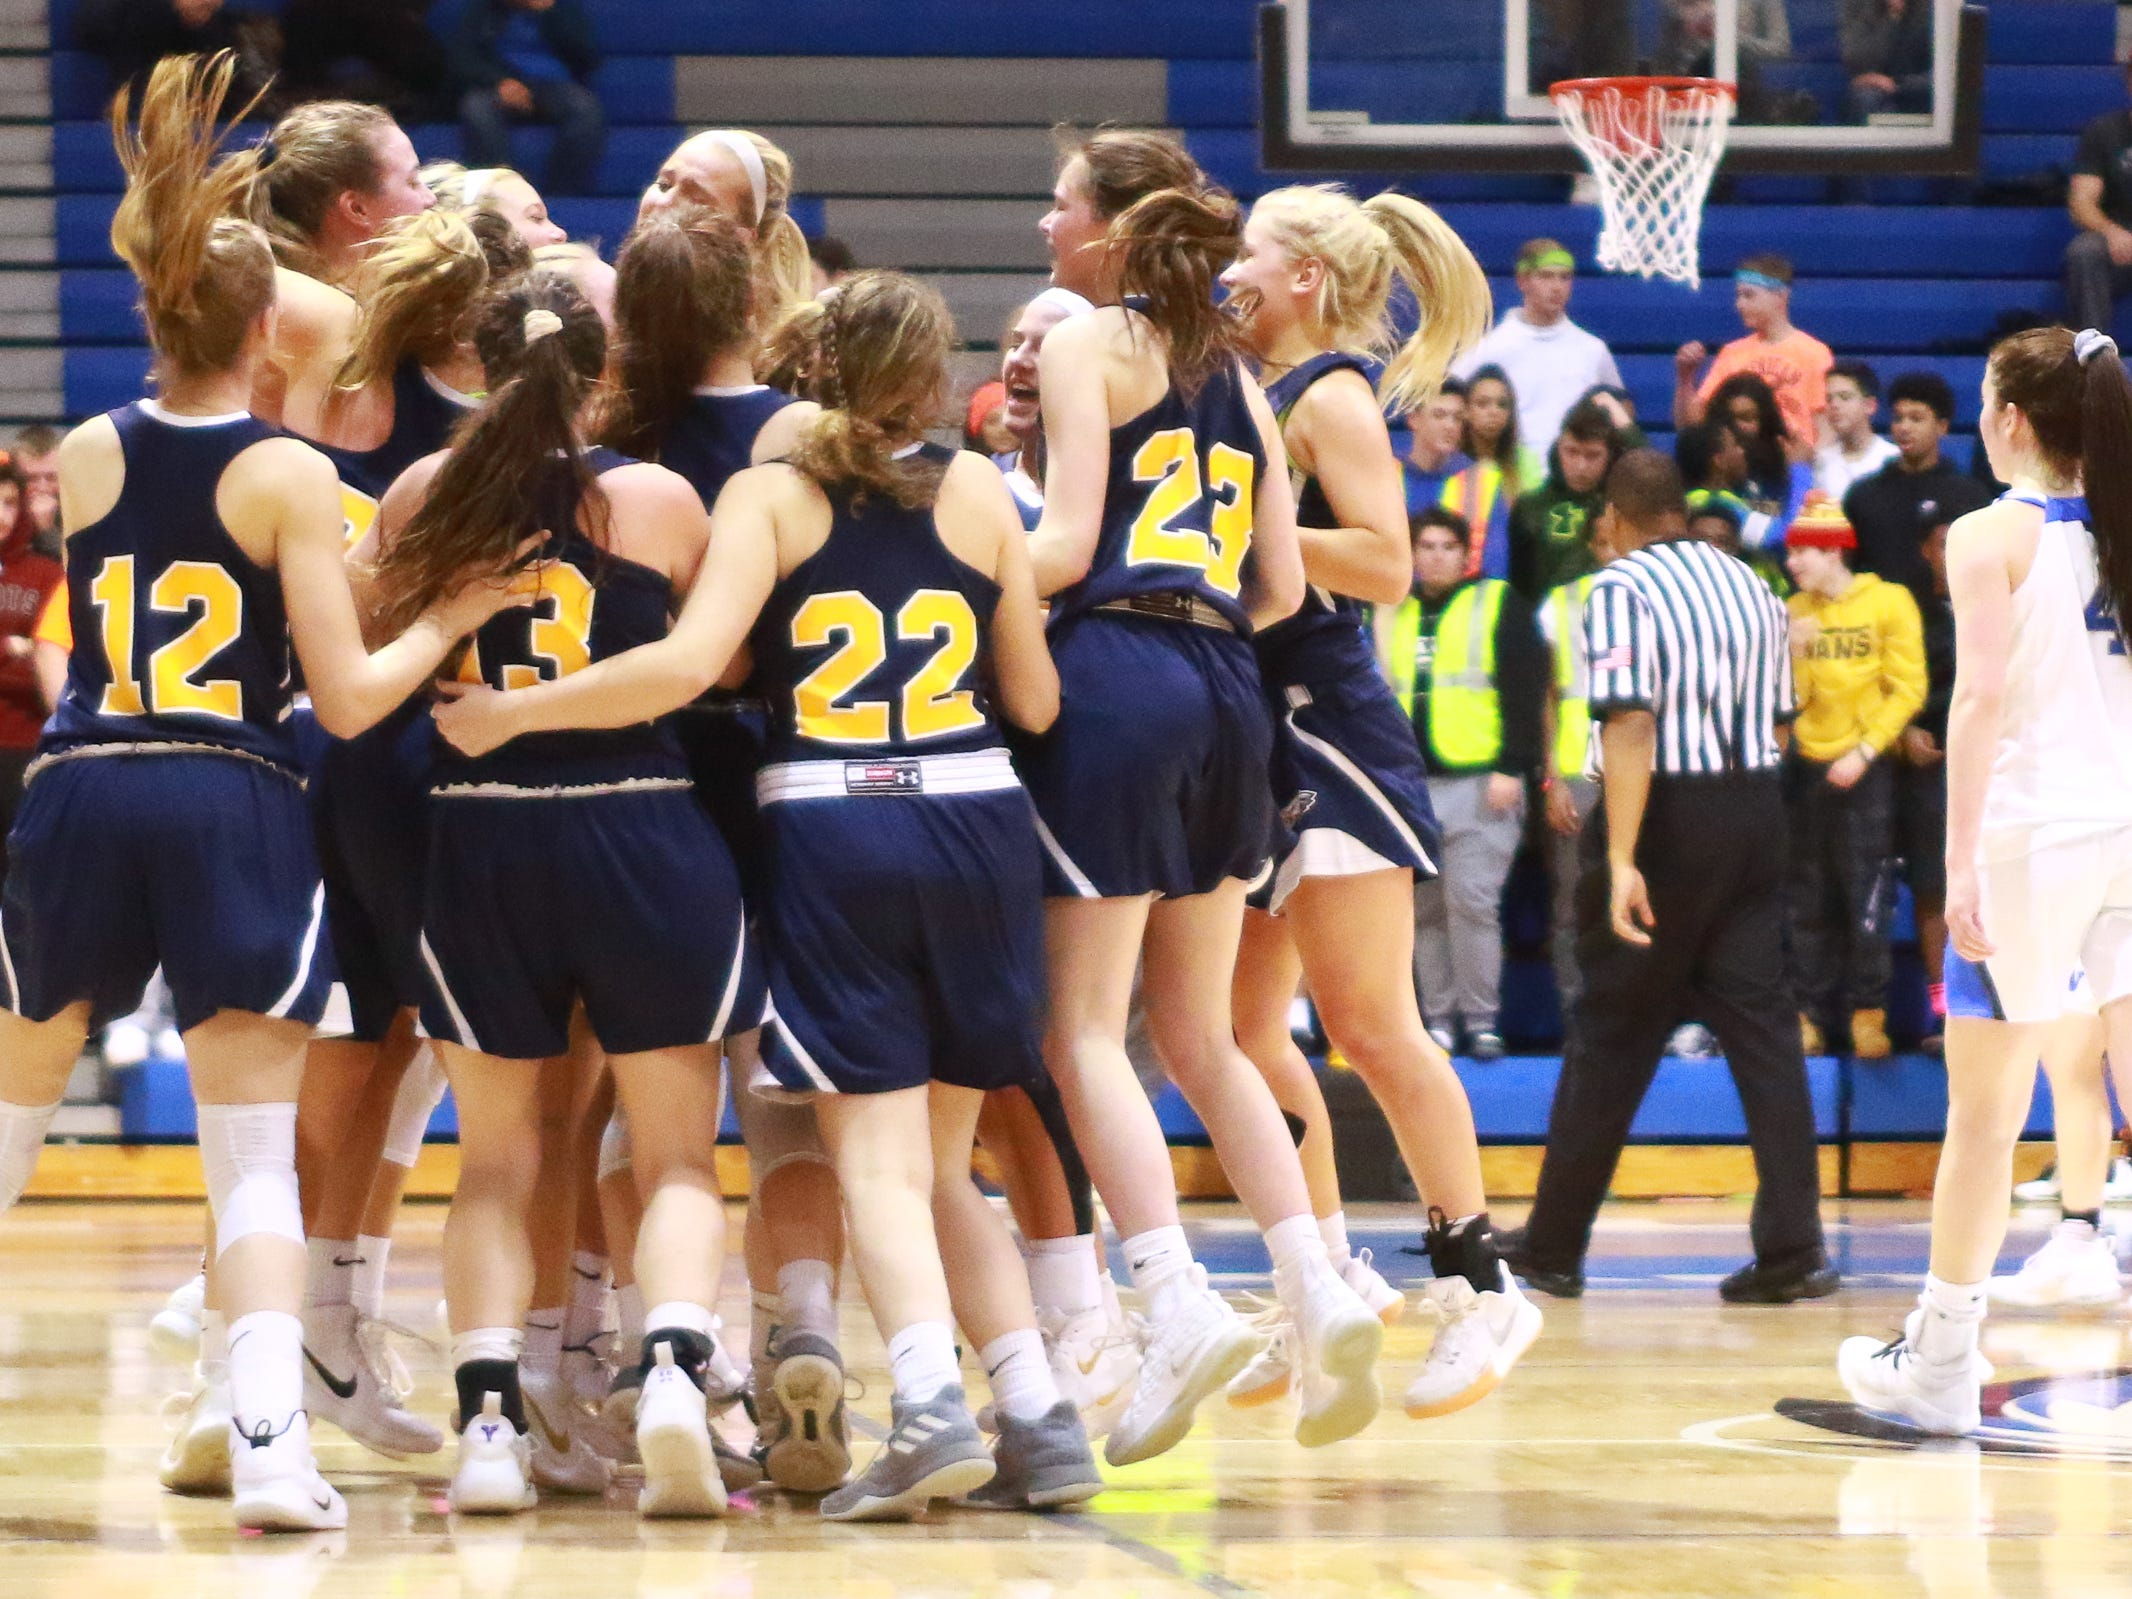 Hartland basketball players celebrate a 50-46 victory over Walled Lake Western in the Division 1 regional championship game at Lakeland on Wednesday, March 13, 2019.